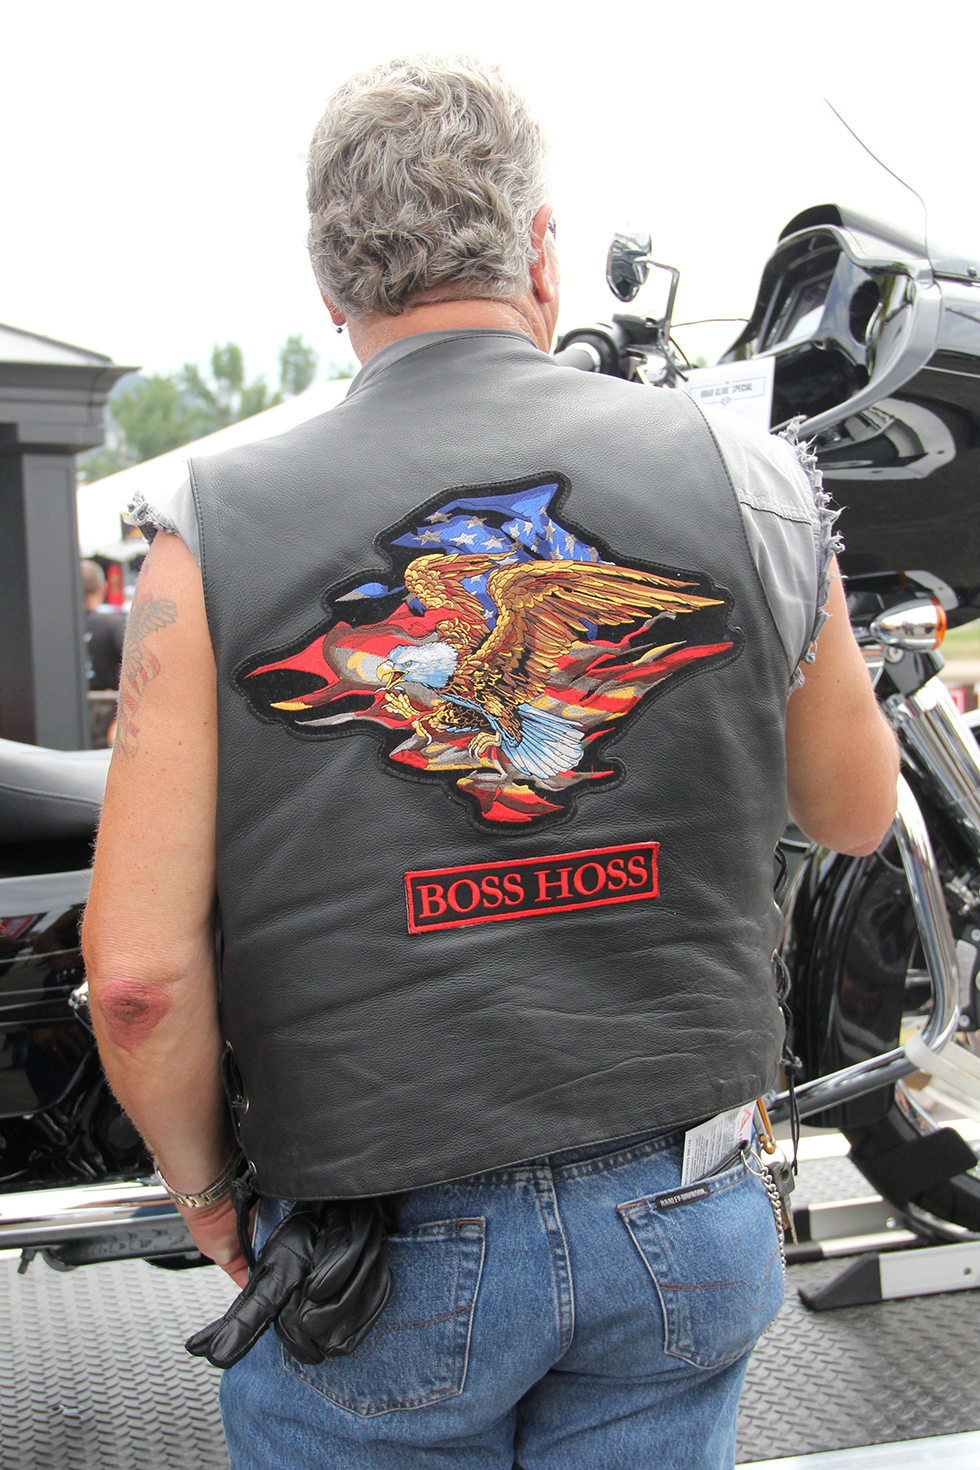 Patches, Tats, Shirts and a Bike Wash | Sturgis, South Dakota